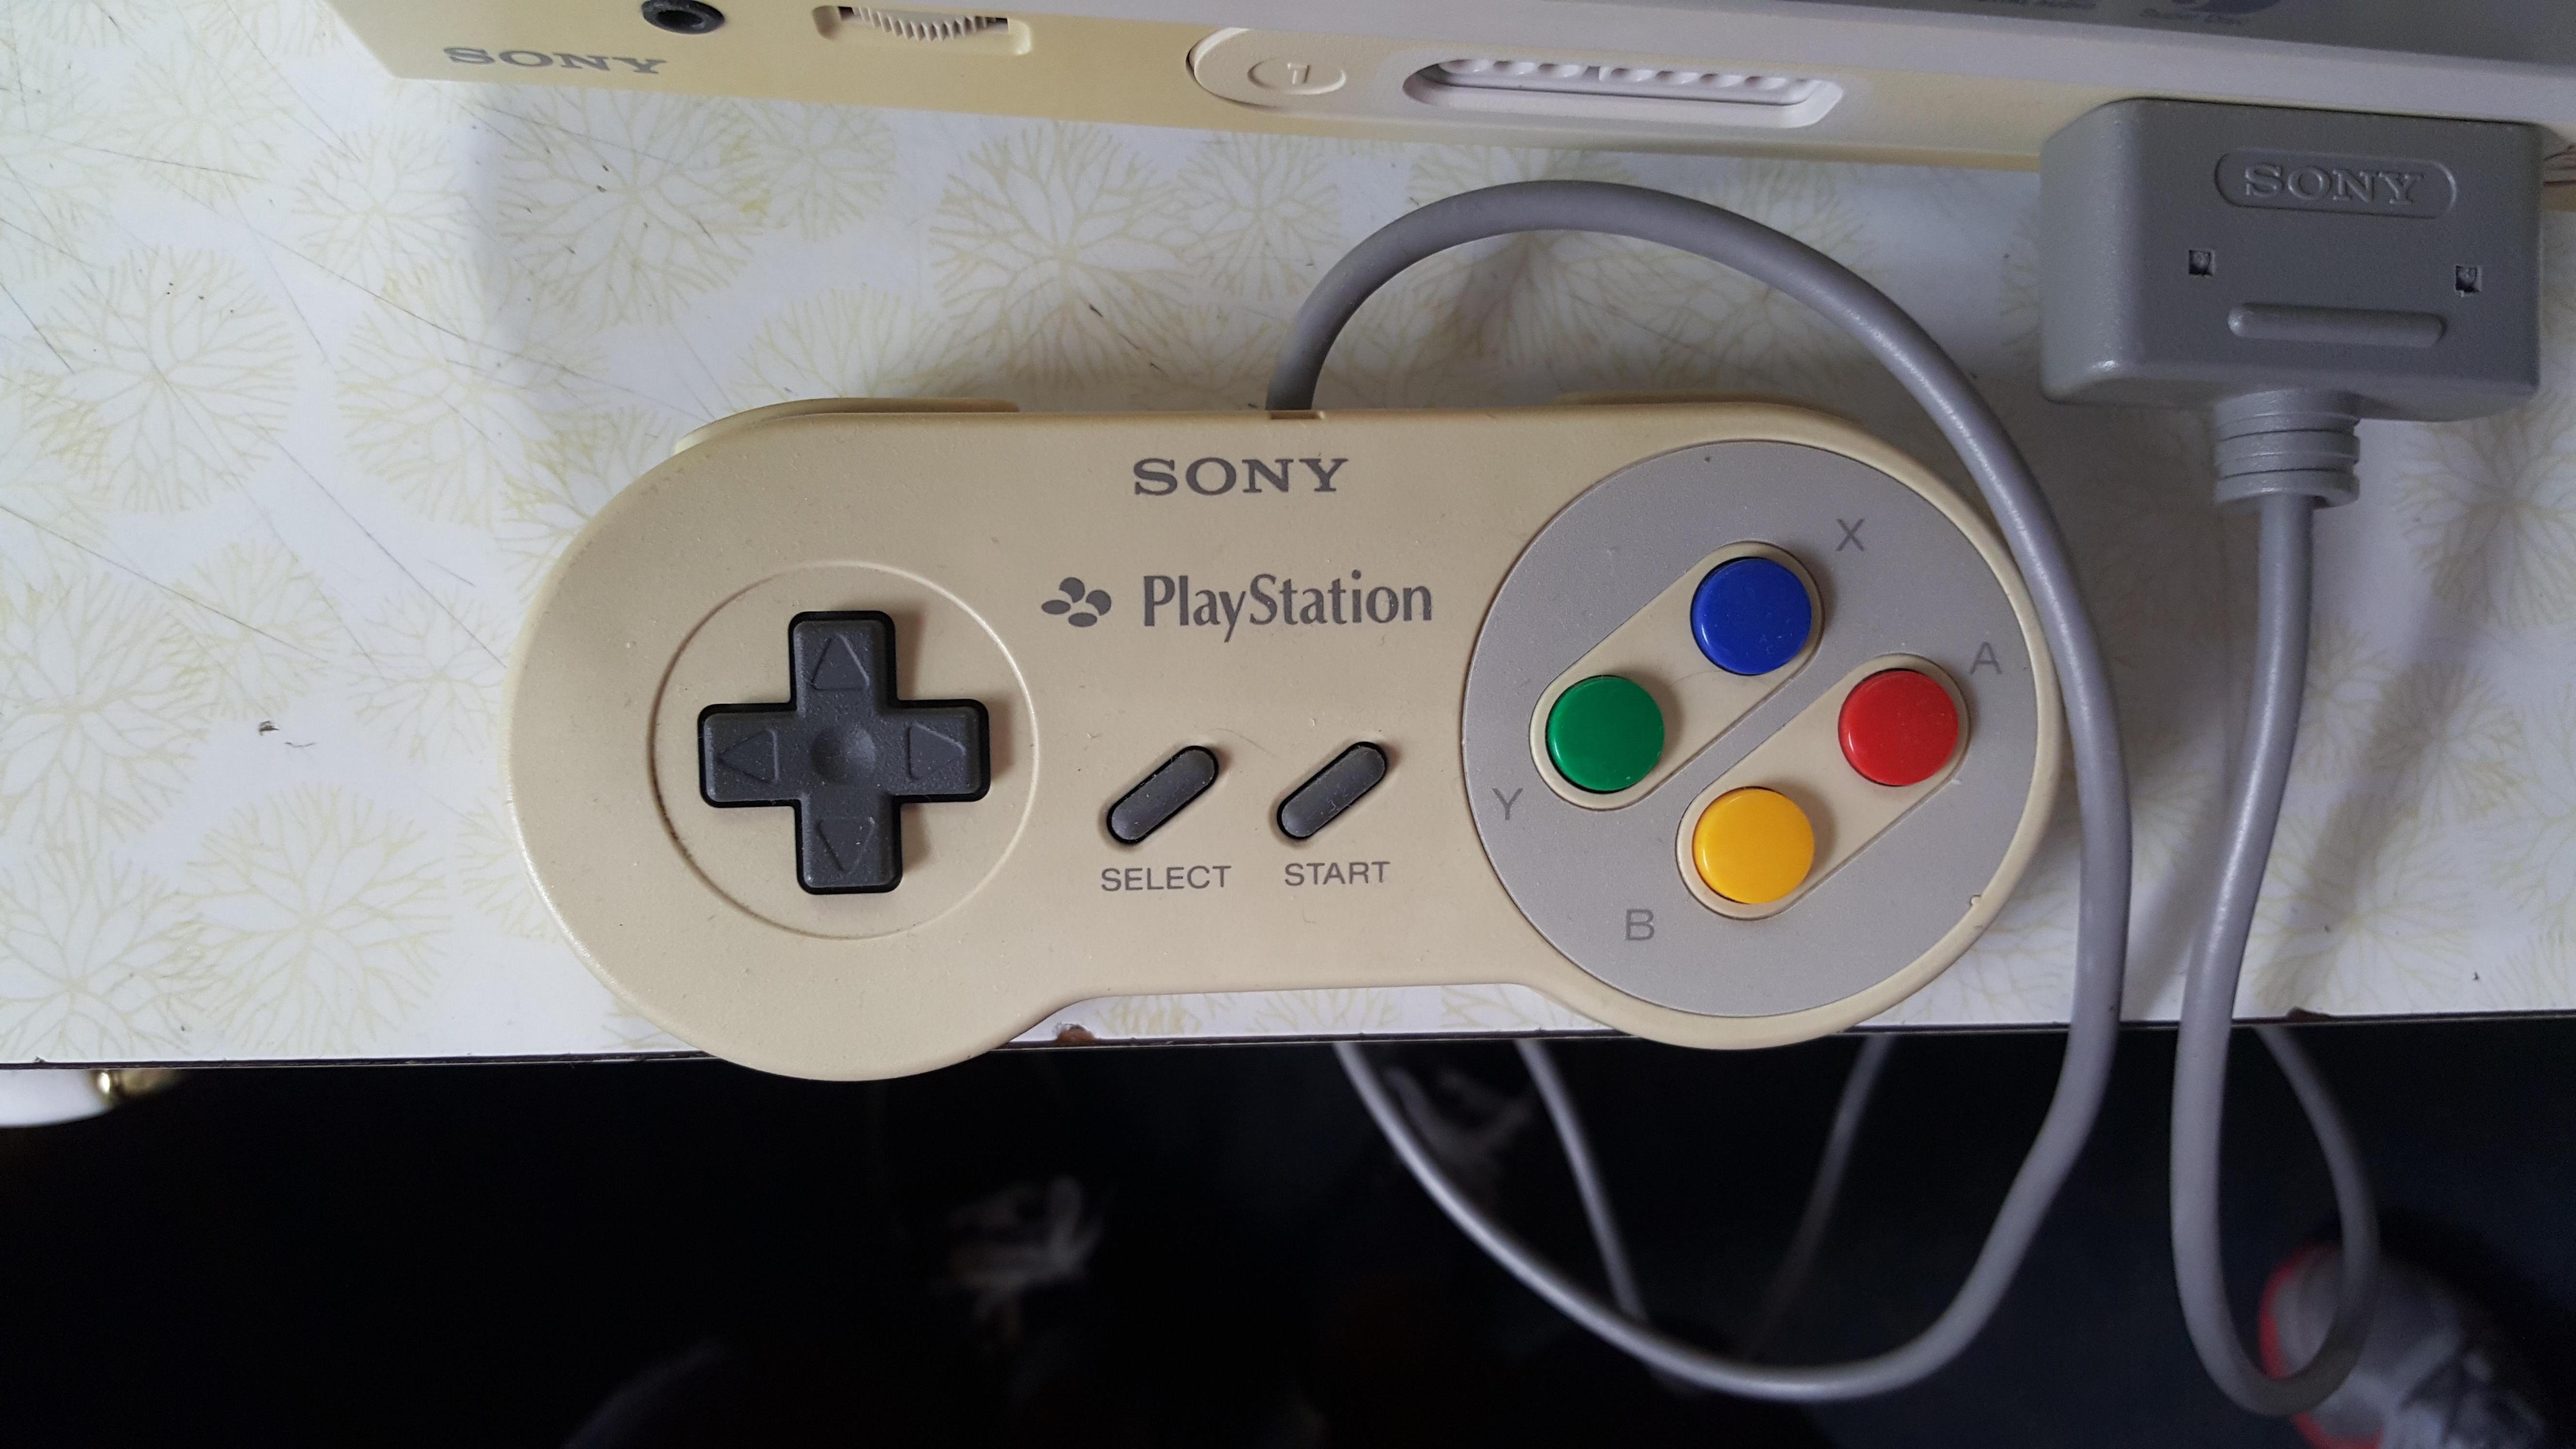 The Nintendo PlayStation is the coolest console never released